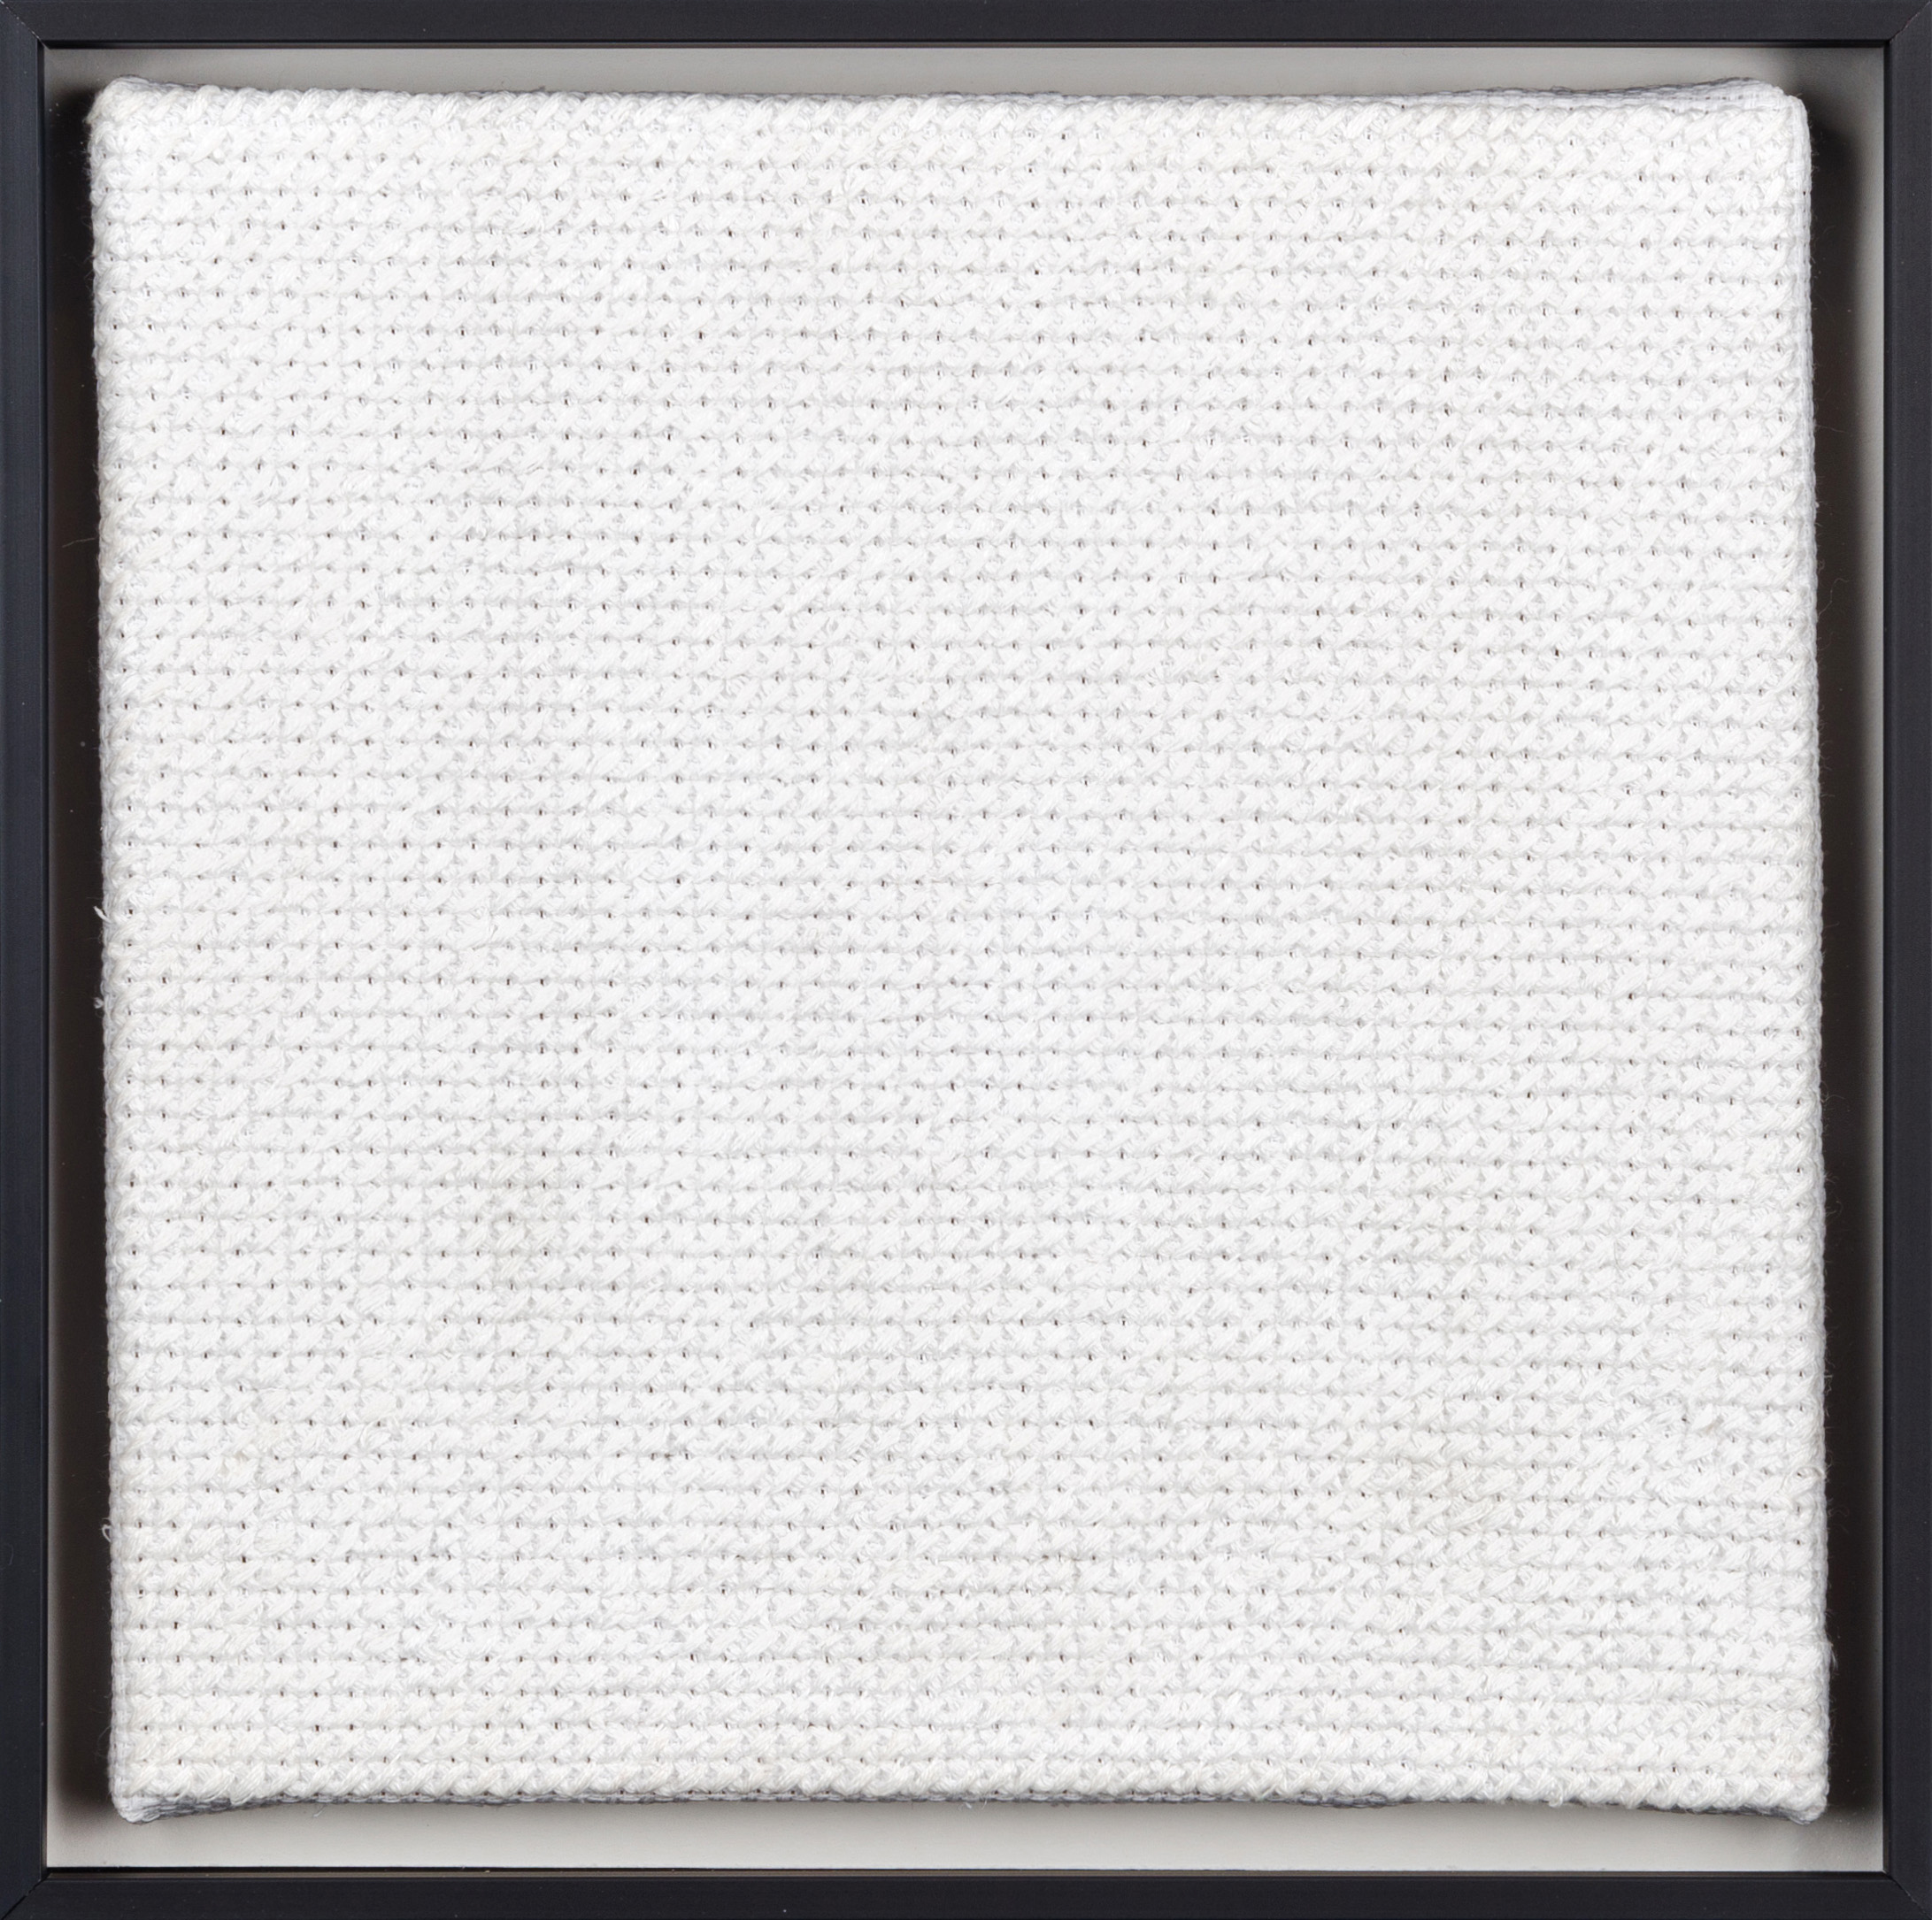 PIERRE LE RICHE. White on white, 2016. Cross-stitch embroidery on Aida cloth. 2500 stitched. 205 x 205mm. Framed.jpg